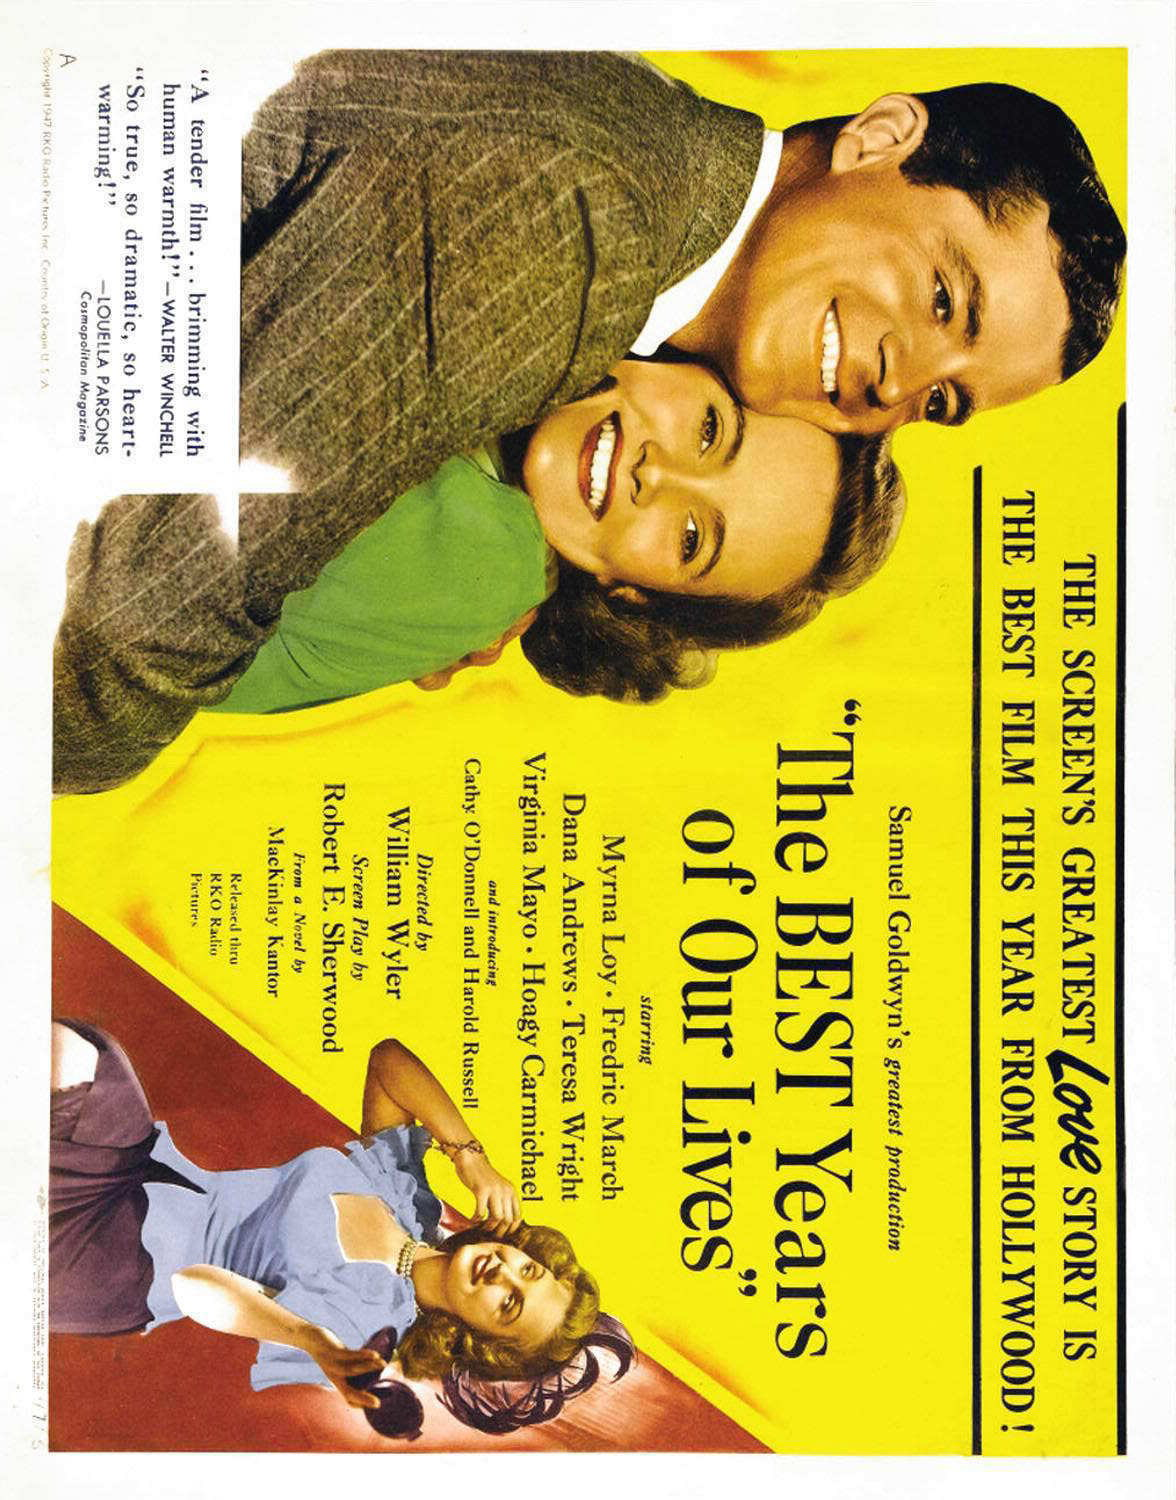 72979-THE-BEST-YEARS-OF-OUR-LIVES-Movie-1946-Wall-Print-Poster-Affiche